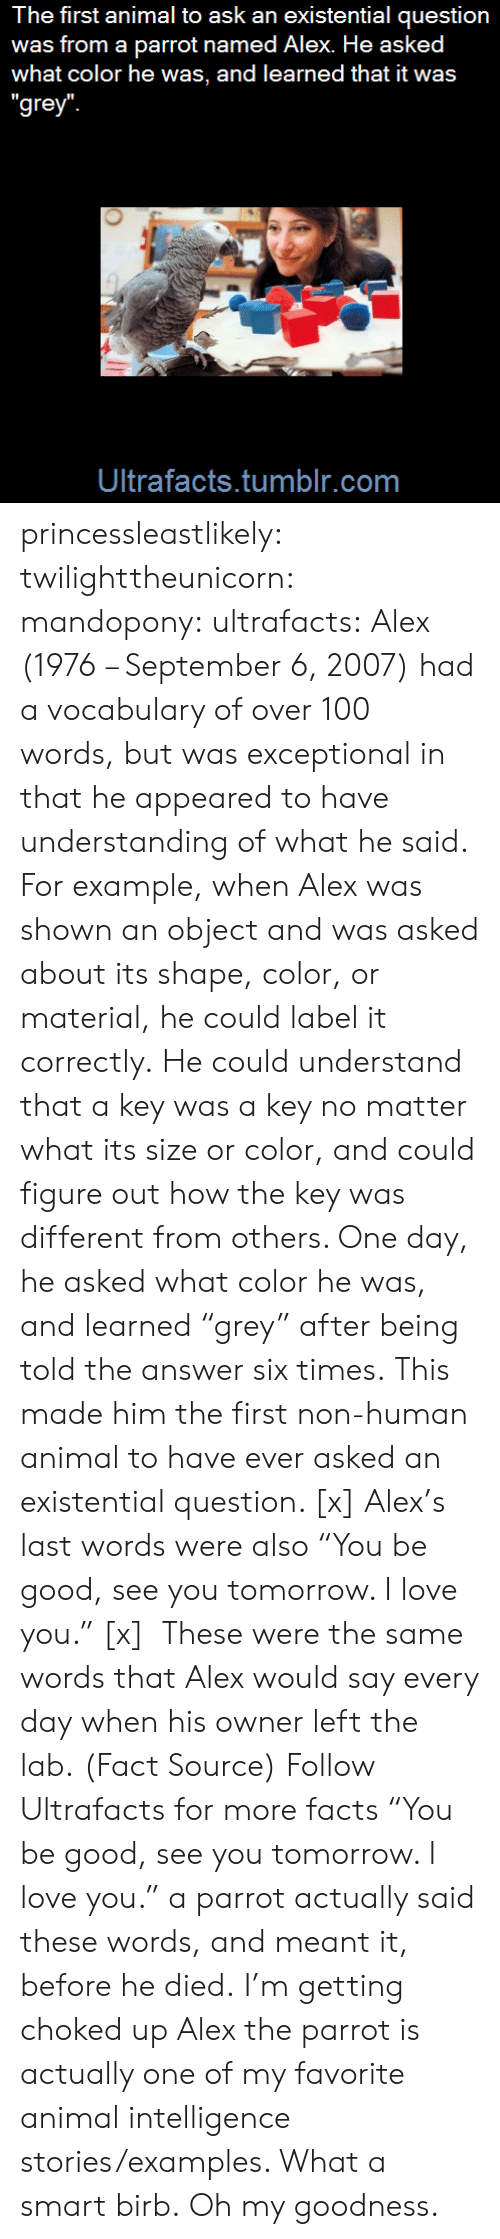 """exceptional: The first animal to ask an existential question  was from a parrot named Alex. He asked  what color he was, and learned that it was  """"grey  Ultrafacts.tumblr.com princessleastlikely: twilighttheunicorn:  mandopony:  ultrafacts:  Alex (1976 – September 6, 2007) had a vocabulary of over 100 words,but was exceptional in that he appeared to have understanding of what he said. For example, when Alex was shown an object and was asked about its shape, color, or material, he could label it correctly.He could understand that a key was a key no matter what its size or color, and could figure out how the key was different from others. One day, he asked what color he was, and learned """"grey"""" after being told the answer six times.This made him the first non-human animal to have ever asked an existential question. [x] Alex's last words were also """"You be good, see you tomorrow. I love you."""" [x] These were the same words that Alex would say every day when his owner left the lab. (Fact Source) Follow Ultrafacts for more facts   """"You be good, see you tomorrow. I love you."""" a parrot actually said these words, and meant it, before he died. I'm getting choked up  Alex the parrot is actually one of my favorite animal intelligence stories/examples. What a smart birb.   Oh my goodness."""